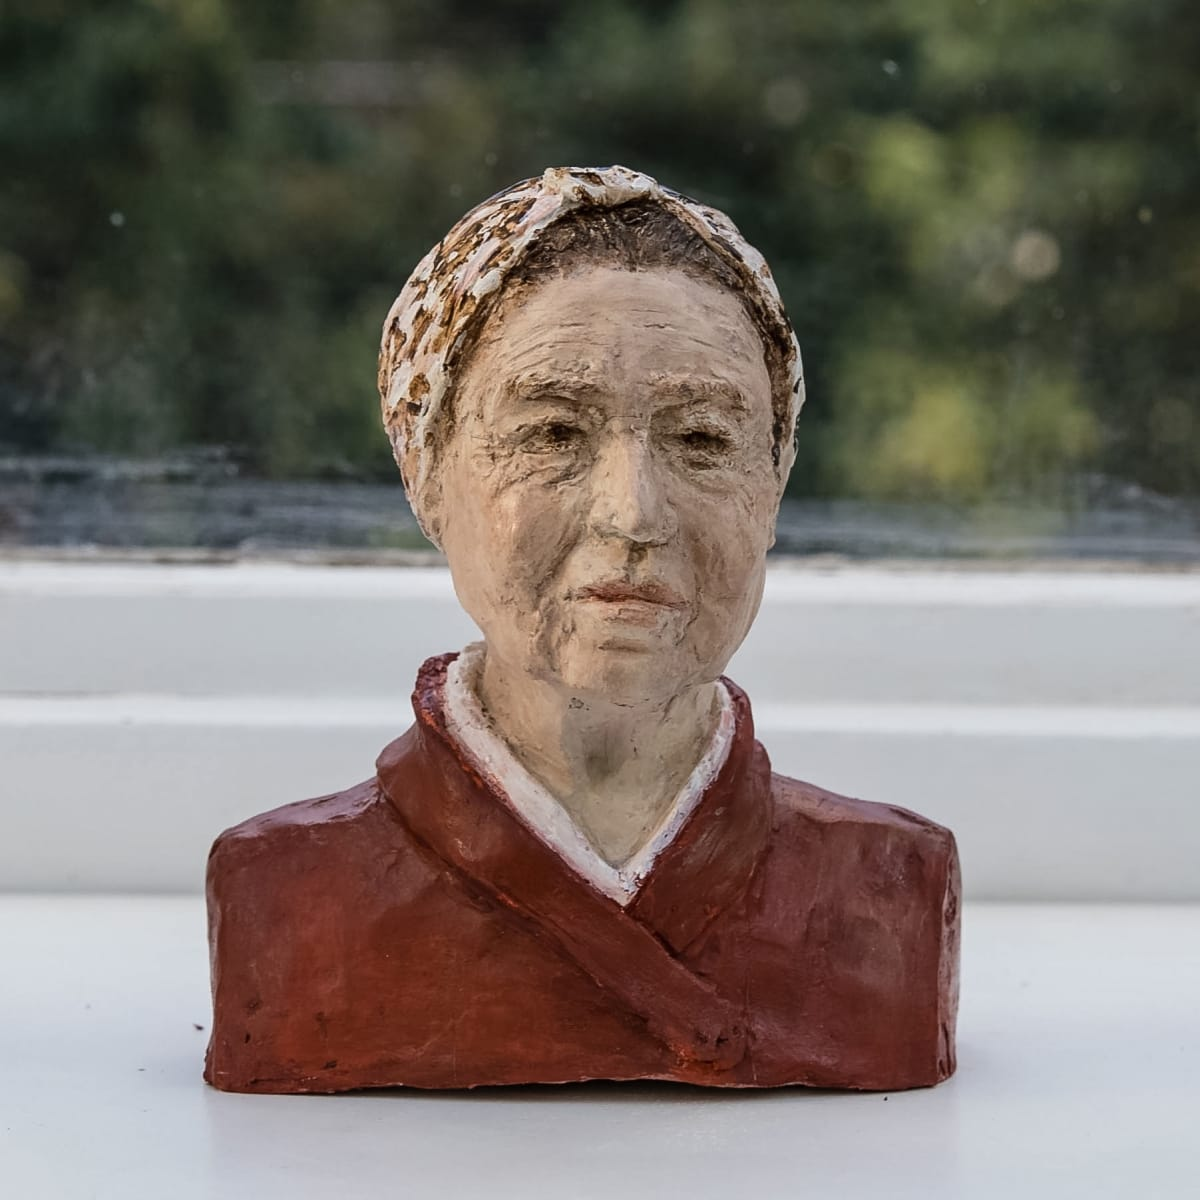 Nicole Farhi Simone de Beauvoir ciment fondu and acrylic; hand-painted bronze casts available to purchase 18 x 14 x 7 cm edition of 7 + 3 APs